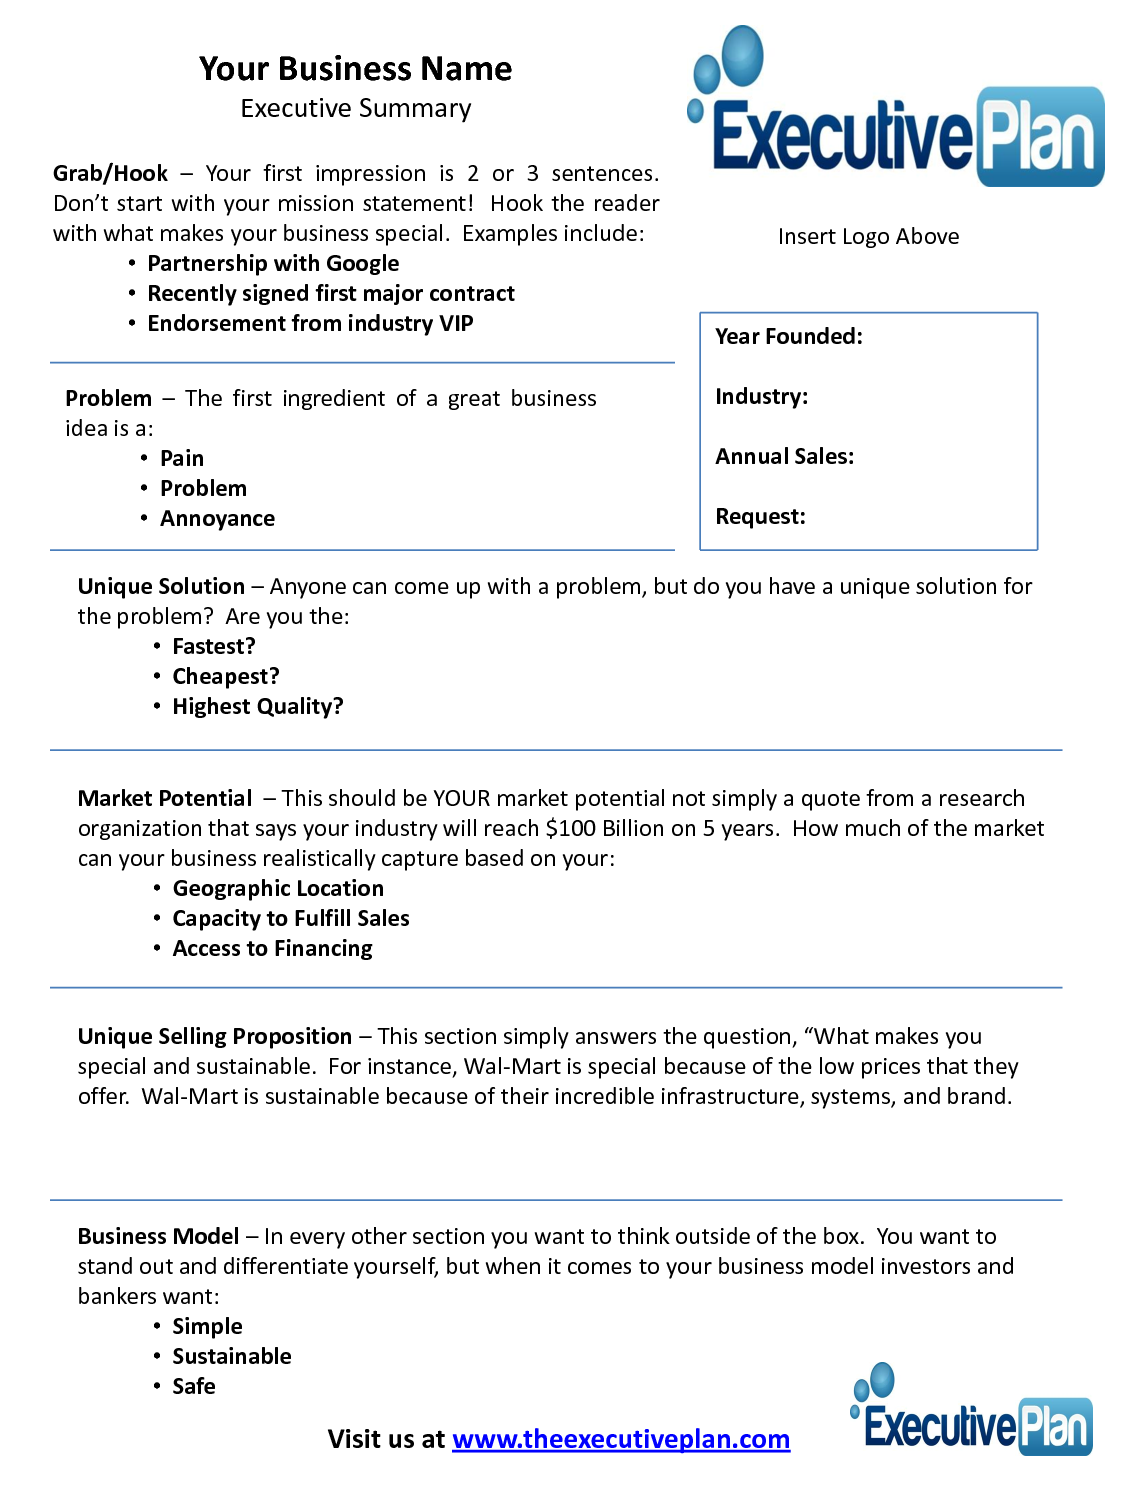 executive summary template word – Case Brief Template Word